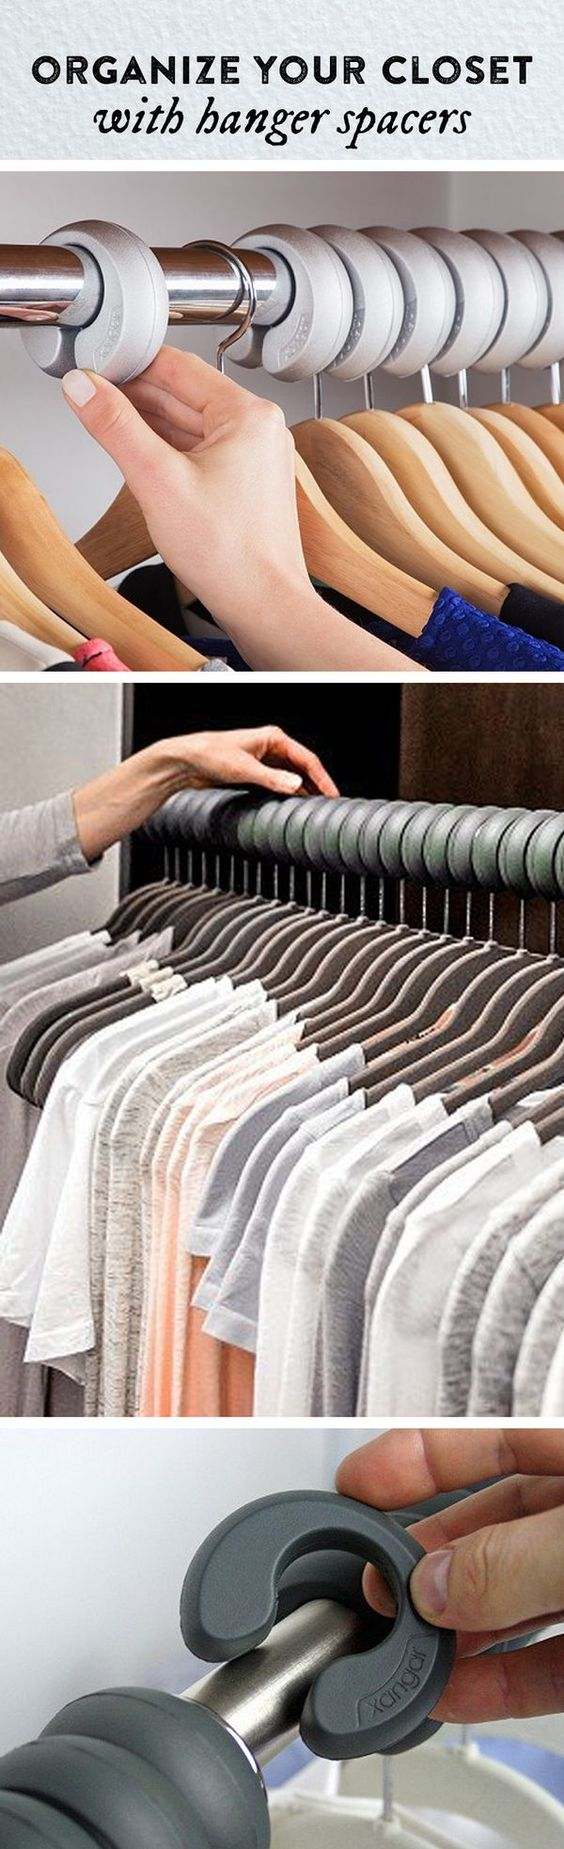 See how freed up your closet can be. These hanger spacers fit over your clothing rod, keeping clothing evenly spaced, unwrinkled, and organized.: